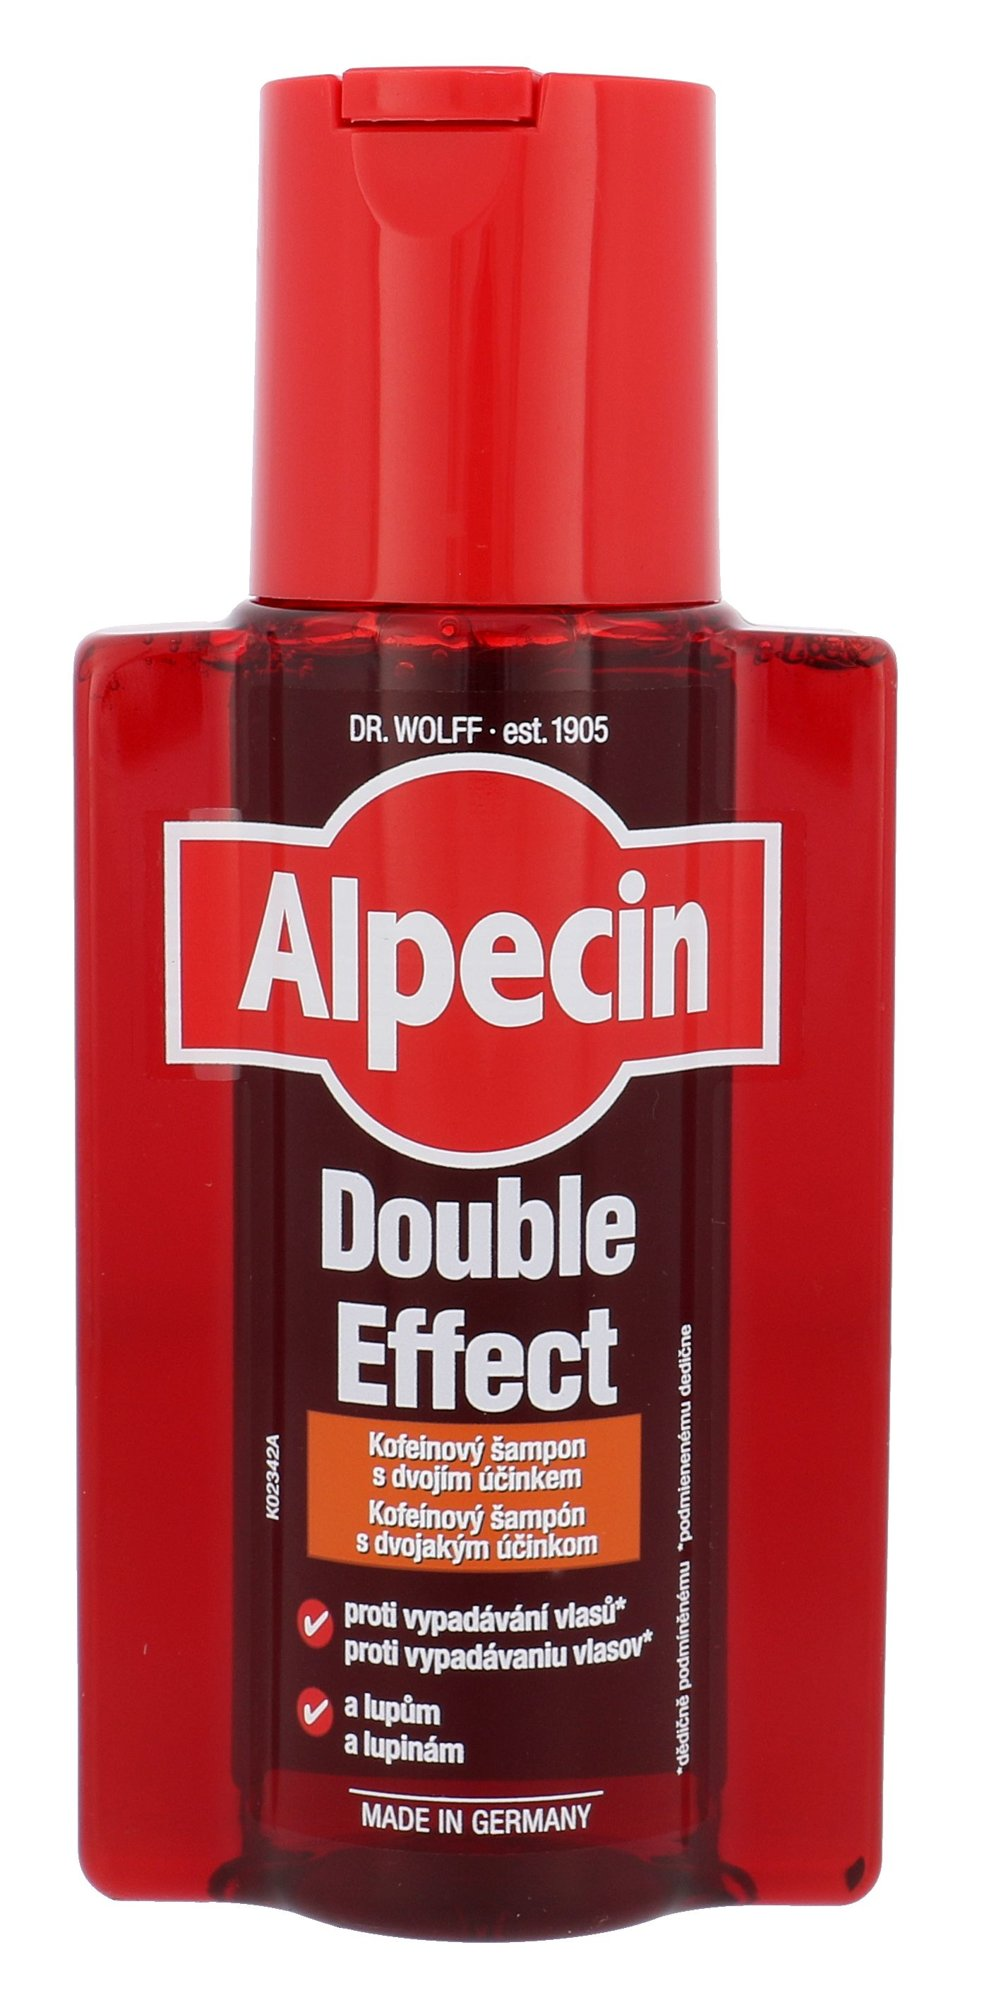 Alpecin Double Effect Caffeine Cosmetic 200ml